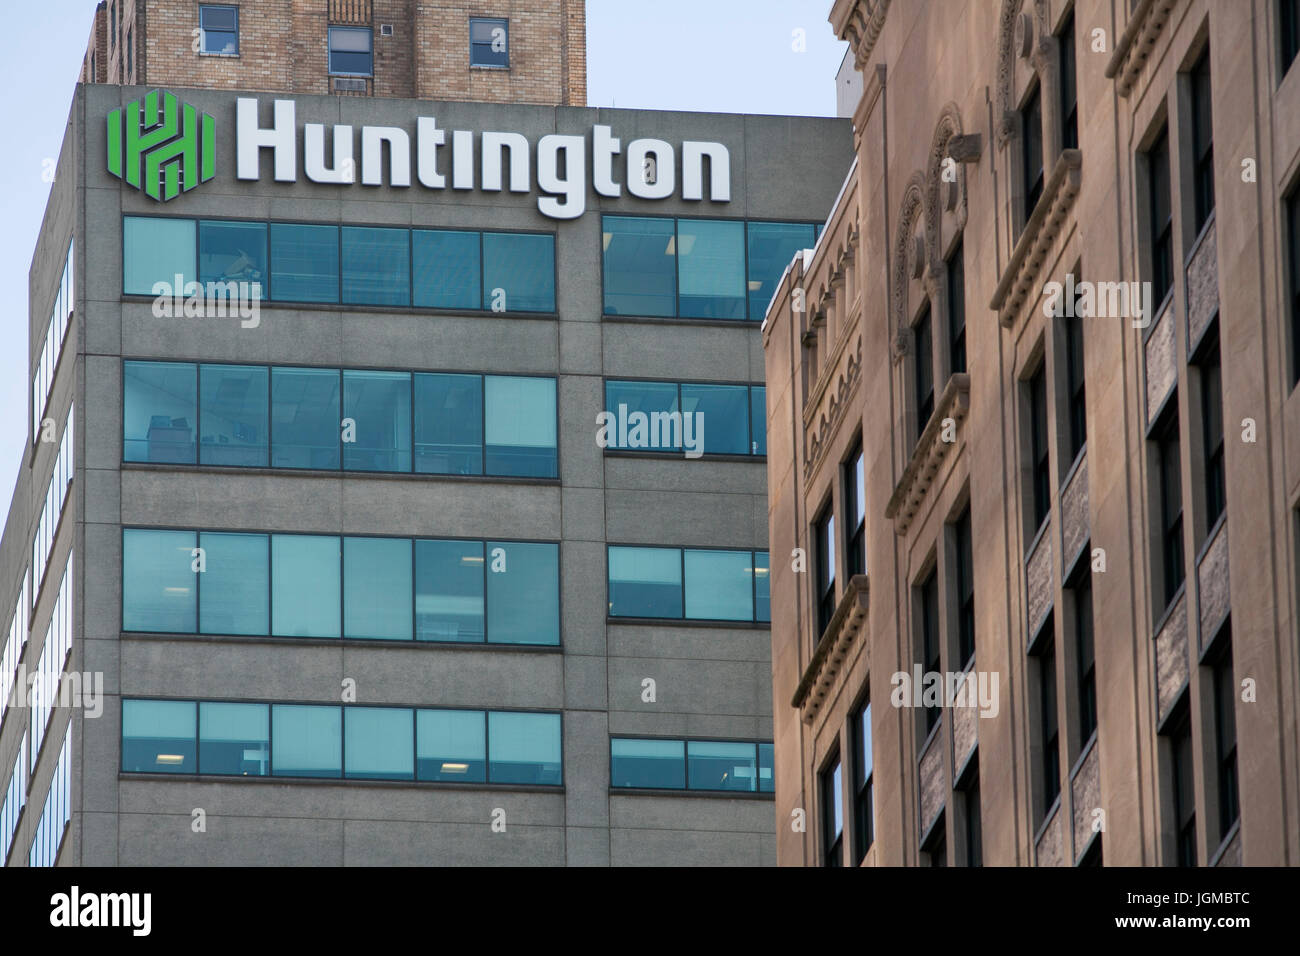 A logo sign outside of a facility occupied by Huntington Bancshares (Bank), in Cincinnati, Ohio on June 29, 2017. - Stock Image